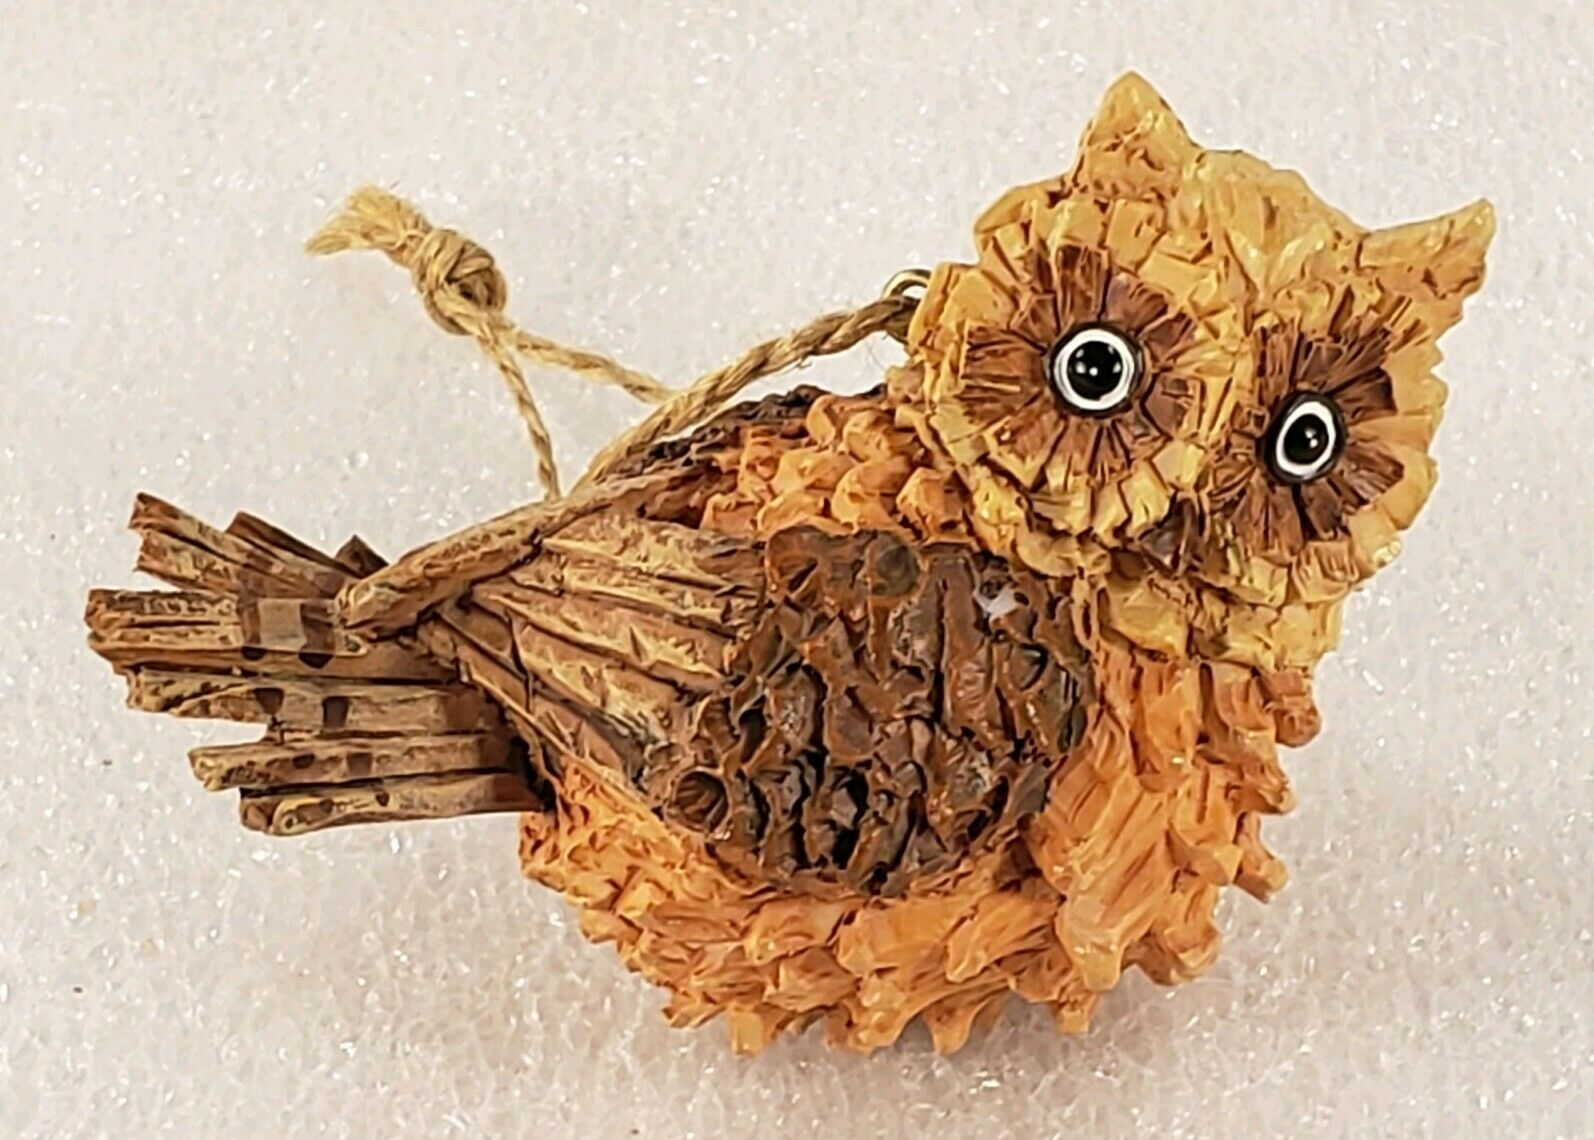 Primary image for Sitting Owl Brown Tan 3d Textured Resin Craft Ornament